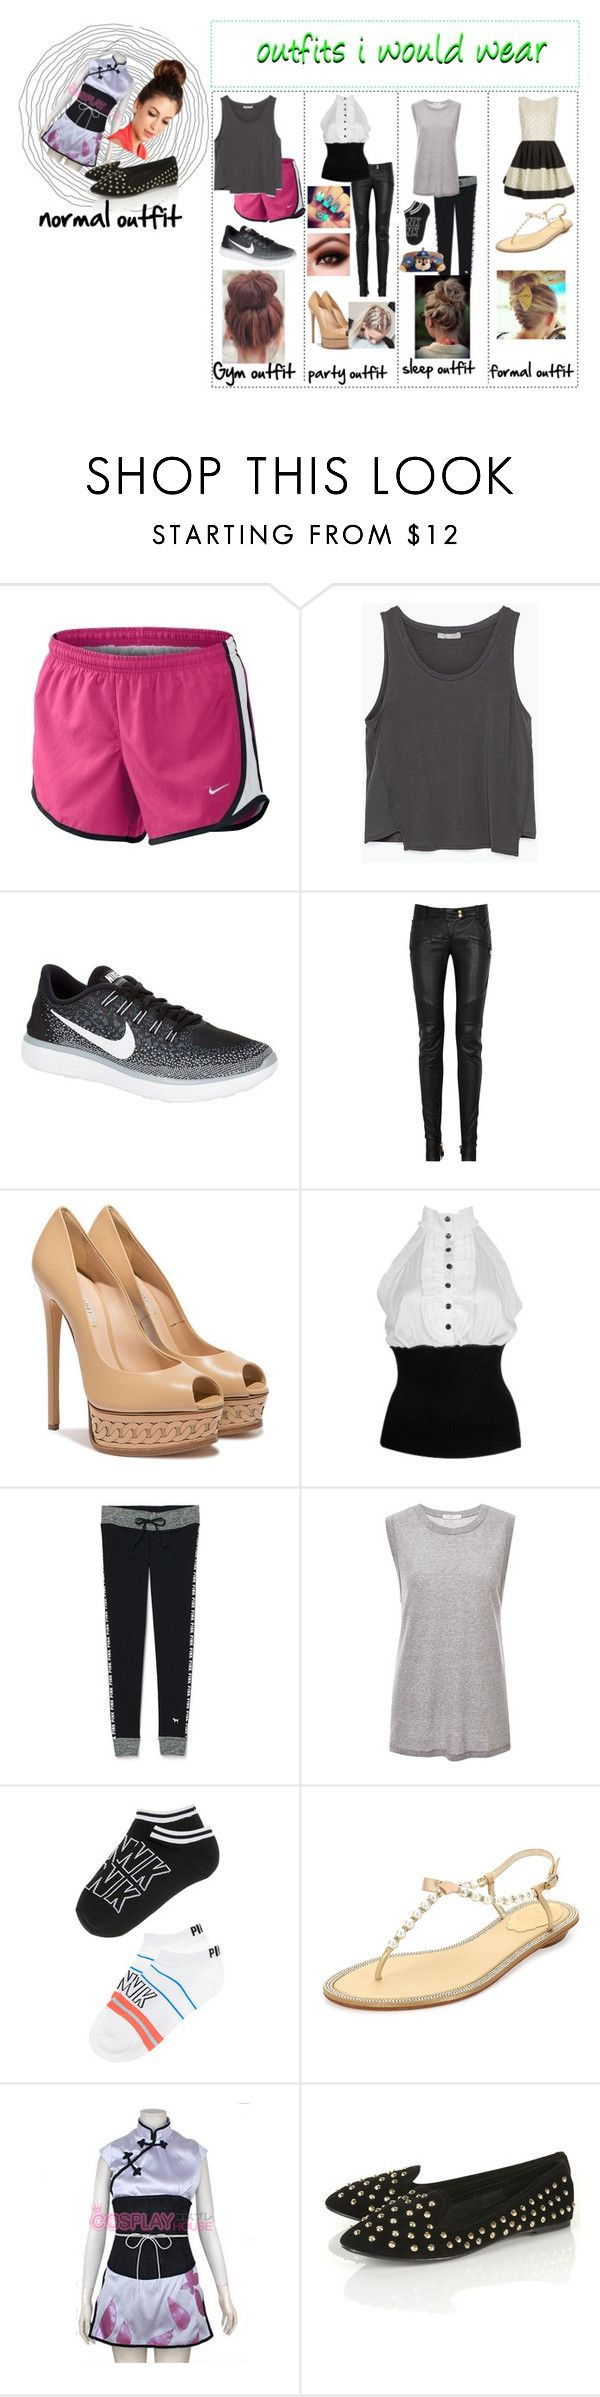 """""""McKaye May"""" by moon-and-back-babe123 ❤ liked on Polyvore featuring NIKE, Zara, Balmain, Casadei, Forever 21, Victoria's Secret, 6397, Nickelodeon, Jones + Jones and René Caovilla"""